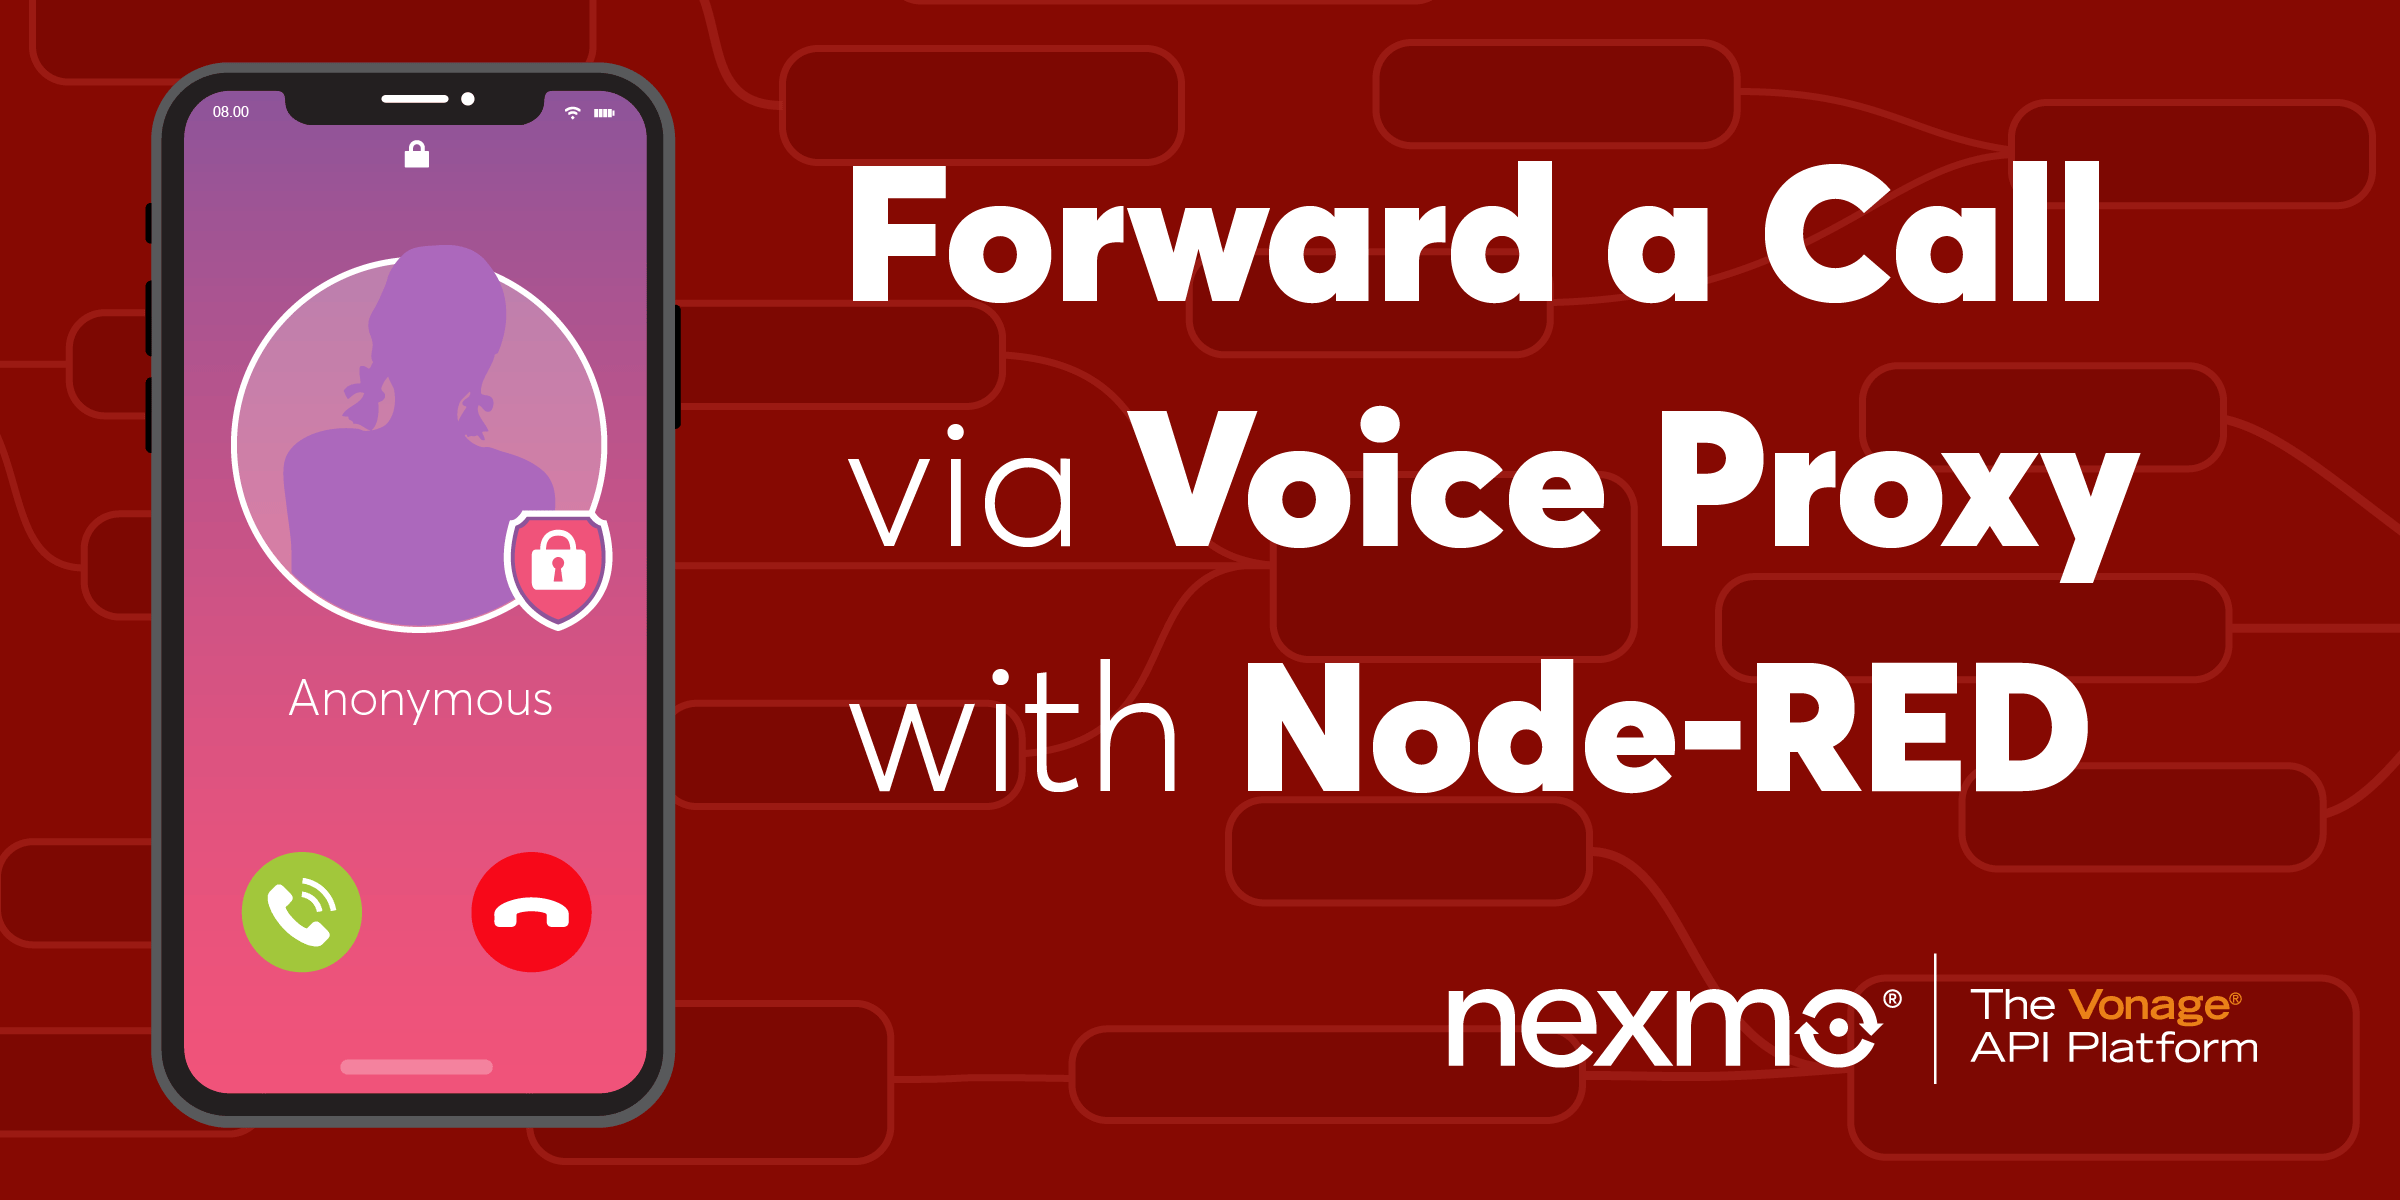 Forward a Call via a Voice Proxy with Node-RED